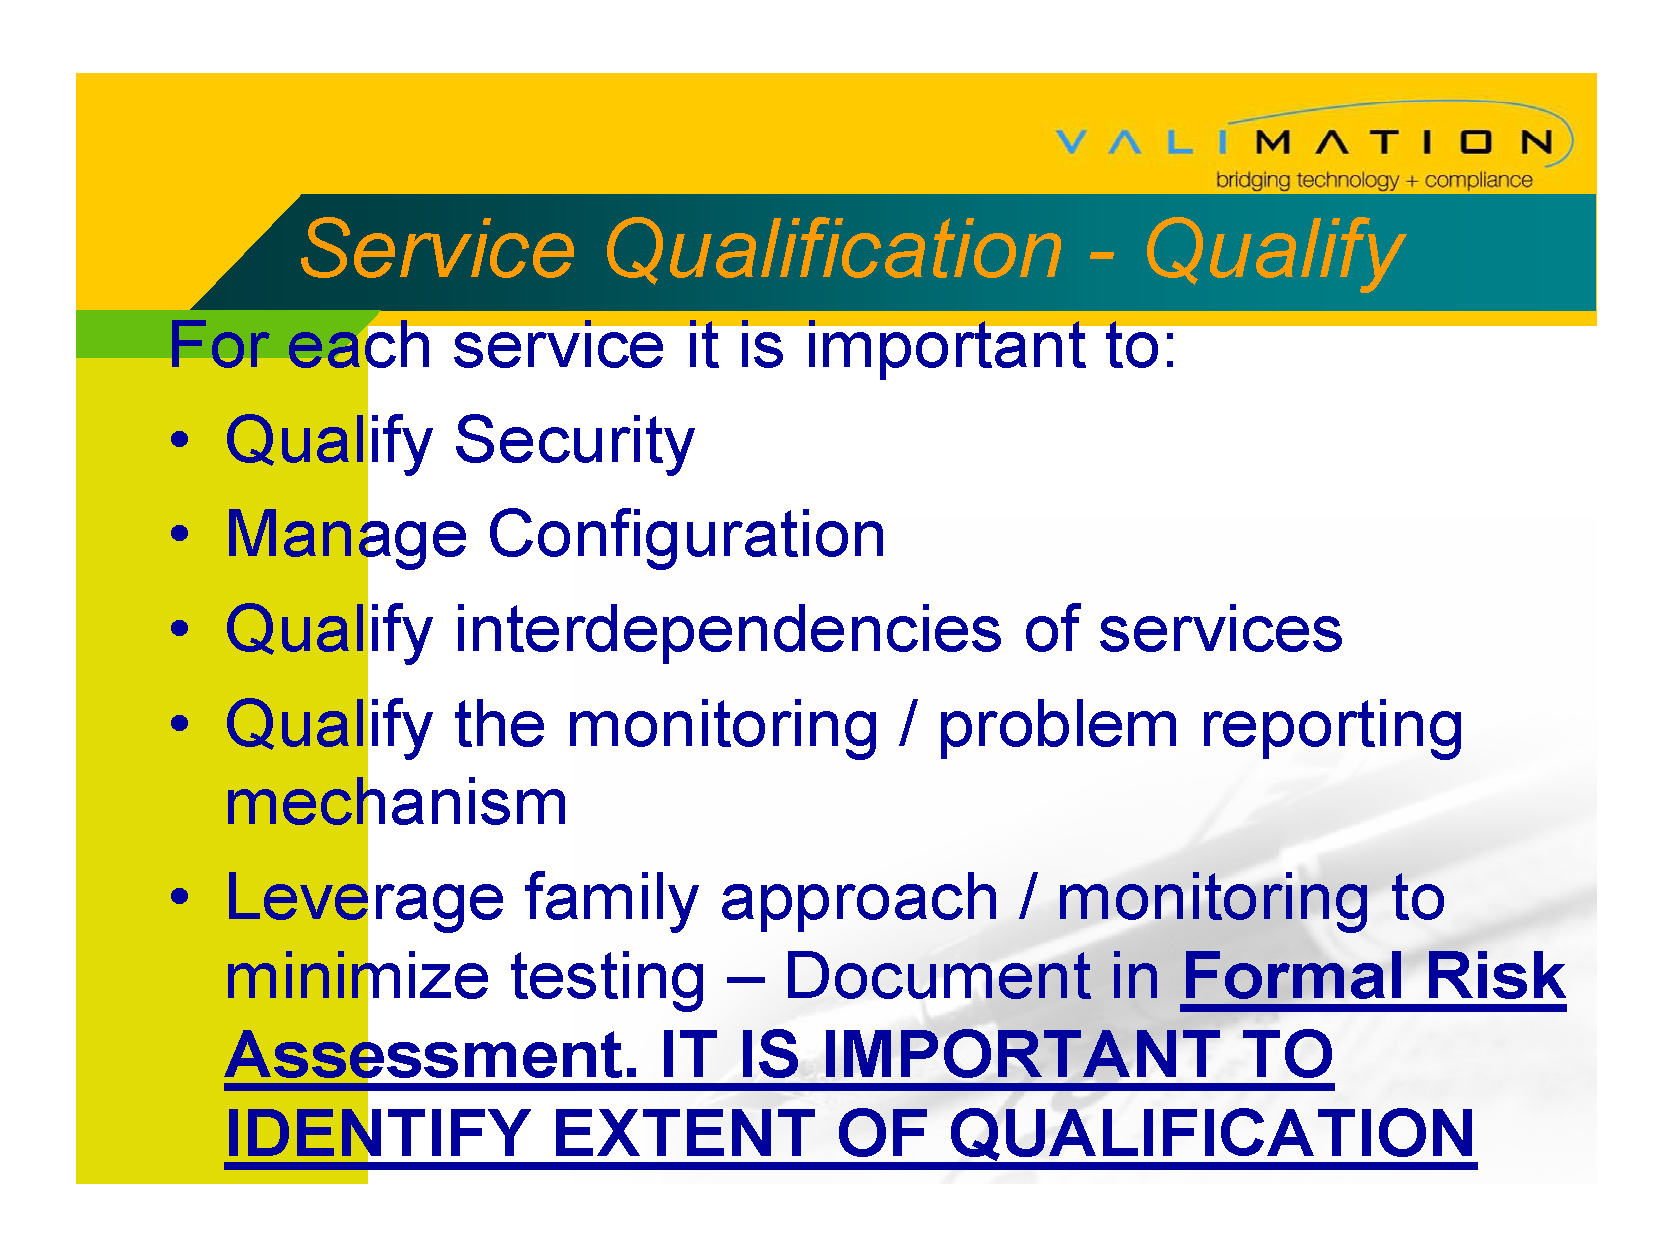 Network Qualification - Accretive Model By ValiMation_Page_15.png